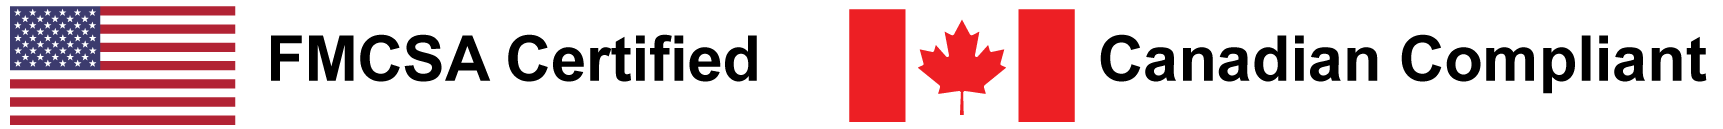 FMCSA-Certified-Canadian-Compliant